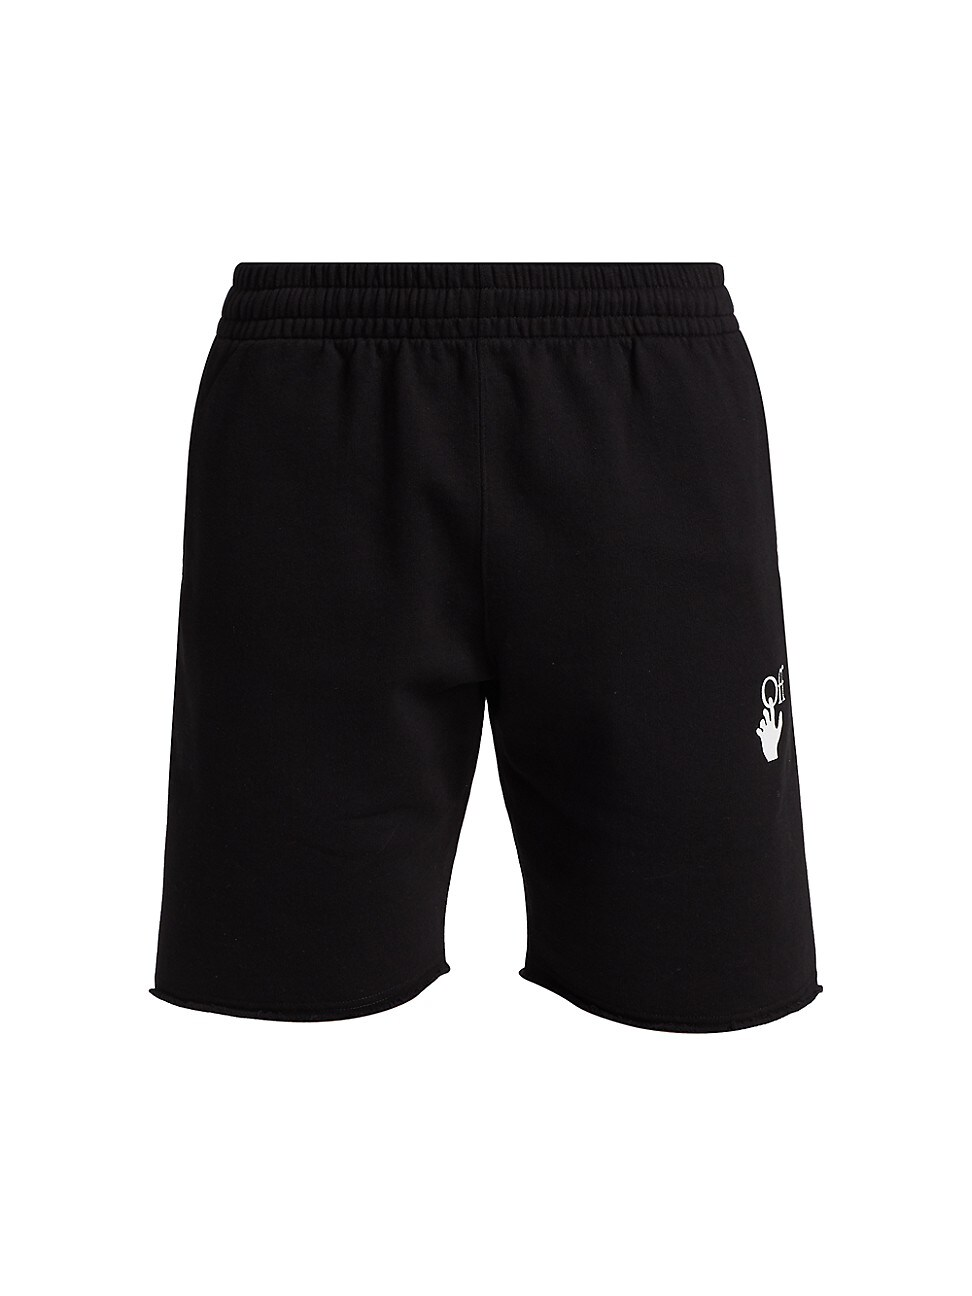 Off-White MEN'S MARKER SWEATSHORTS